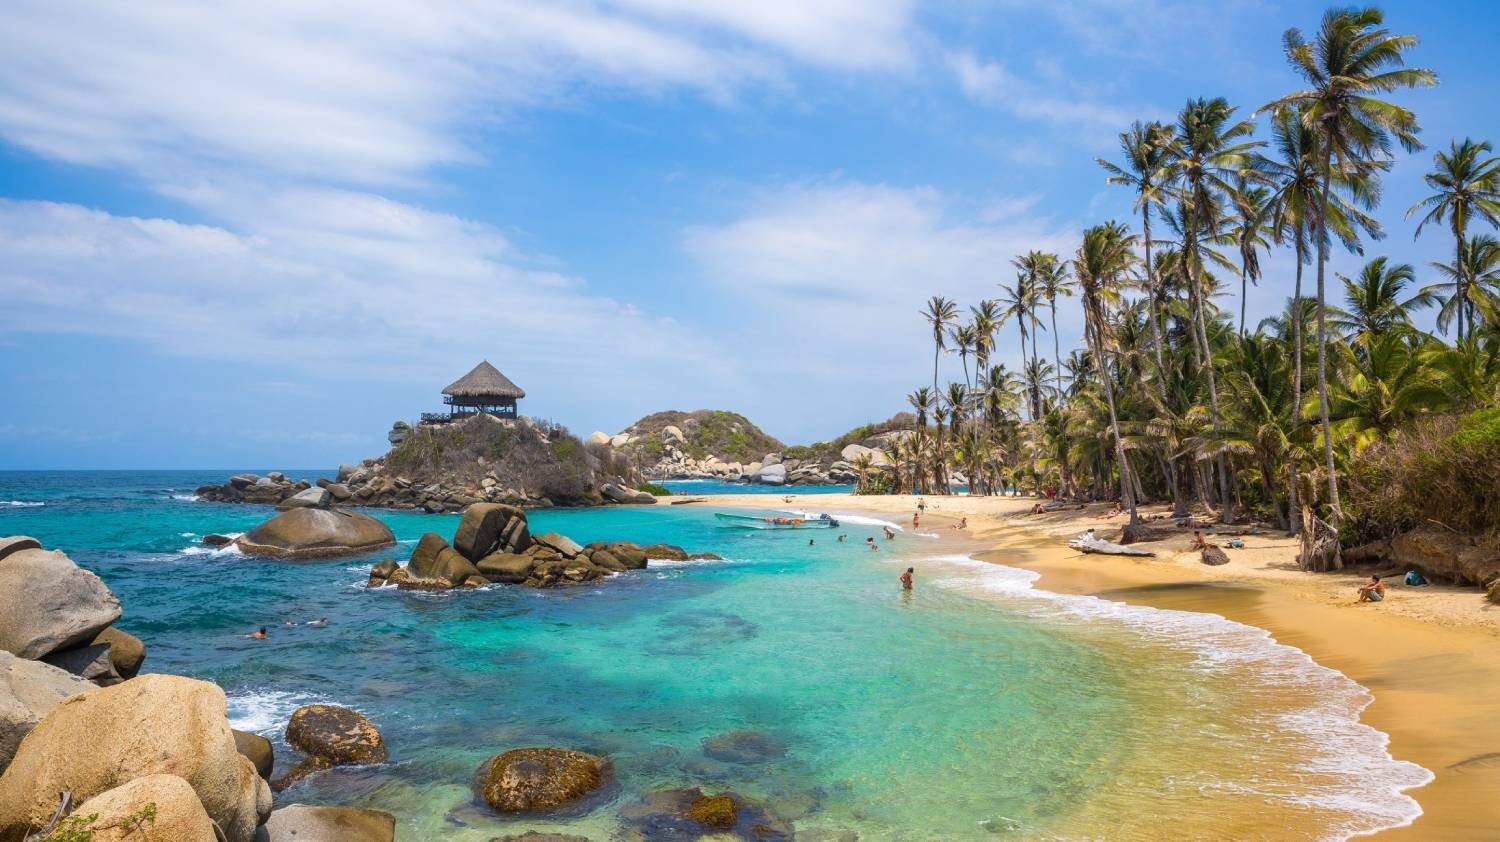 Santa Marta - The Best Places To Visit In Colombia